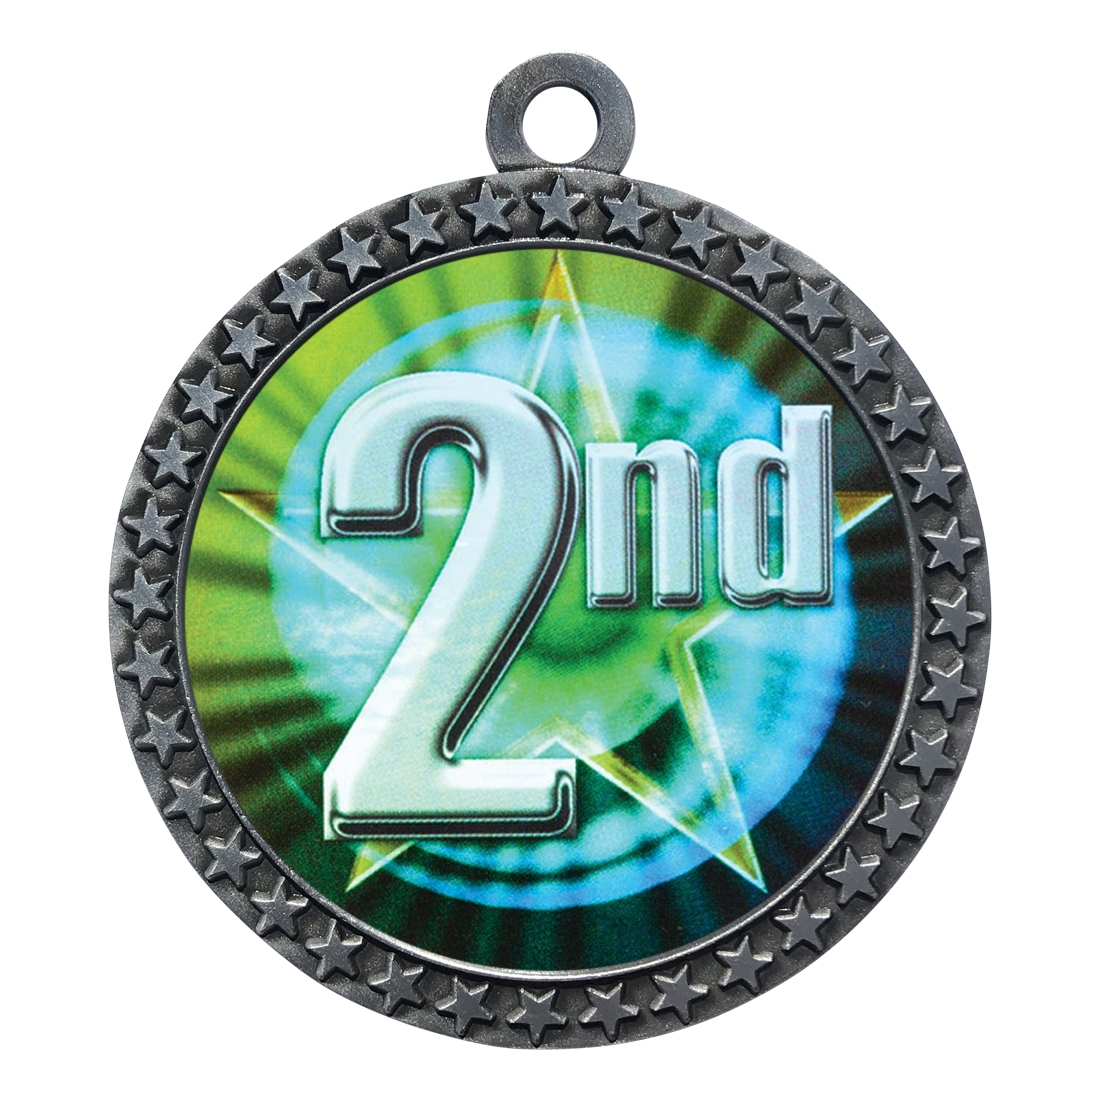 "2-1/2"" 2nd Place Medal"